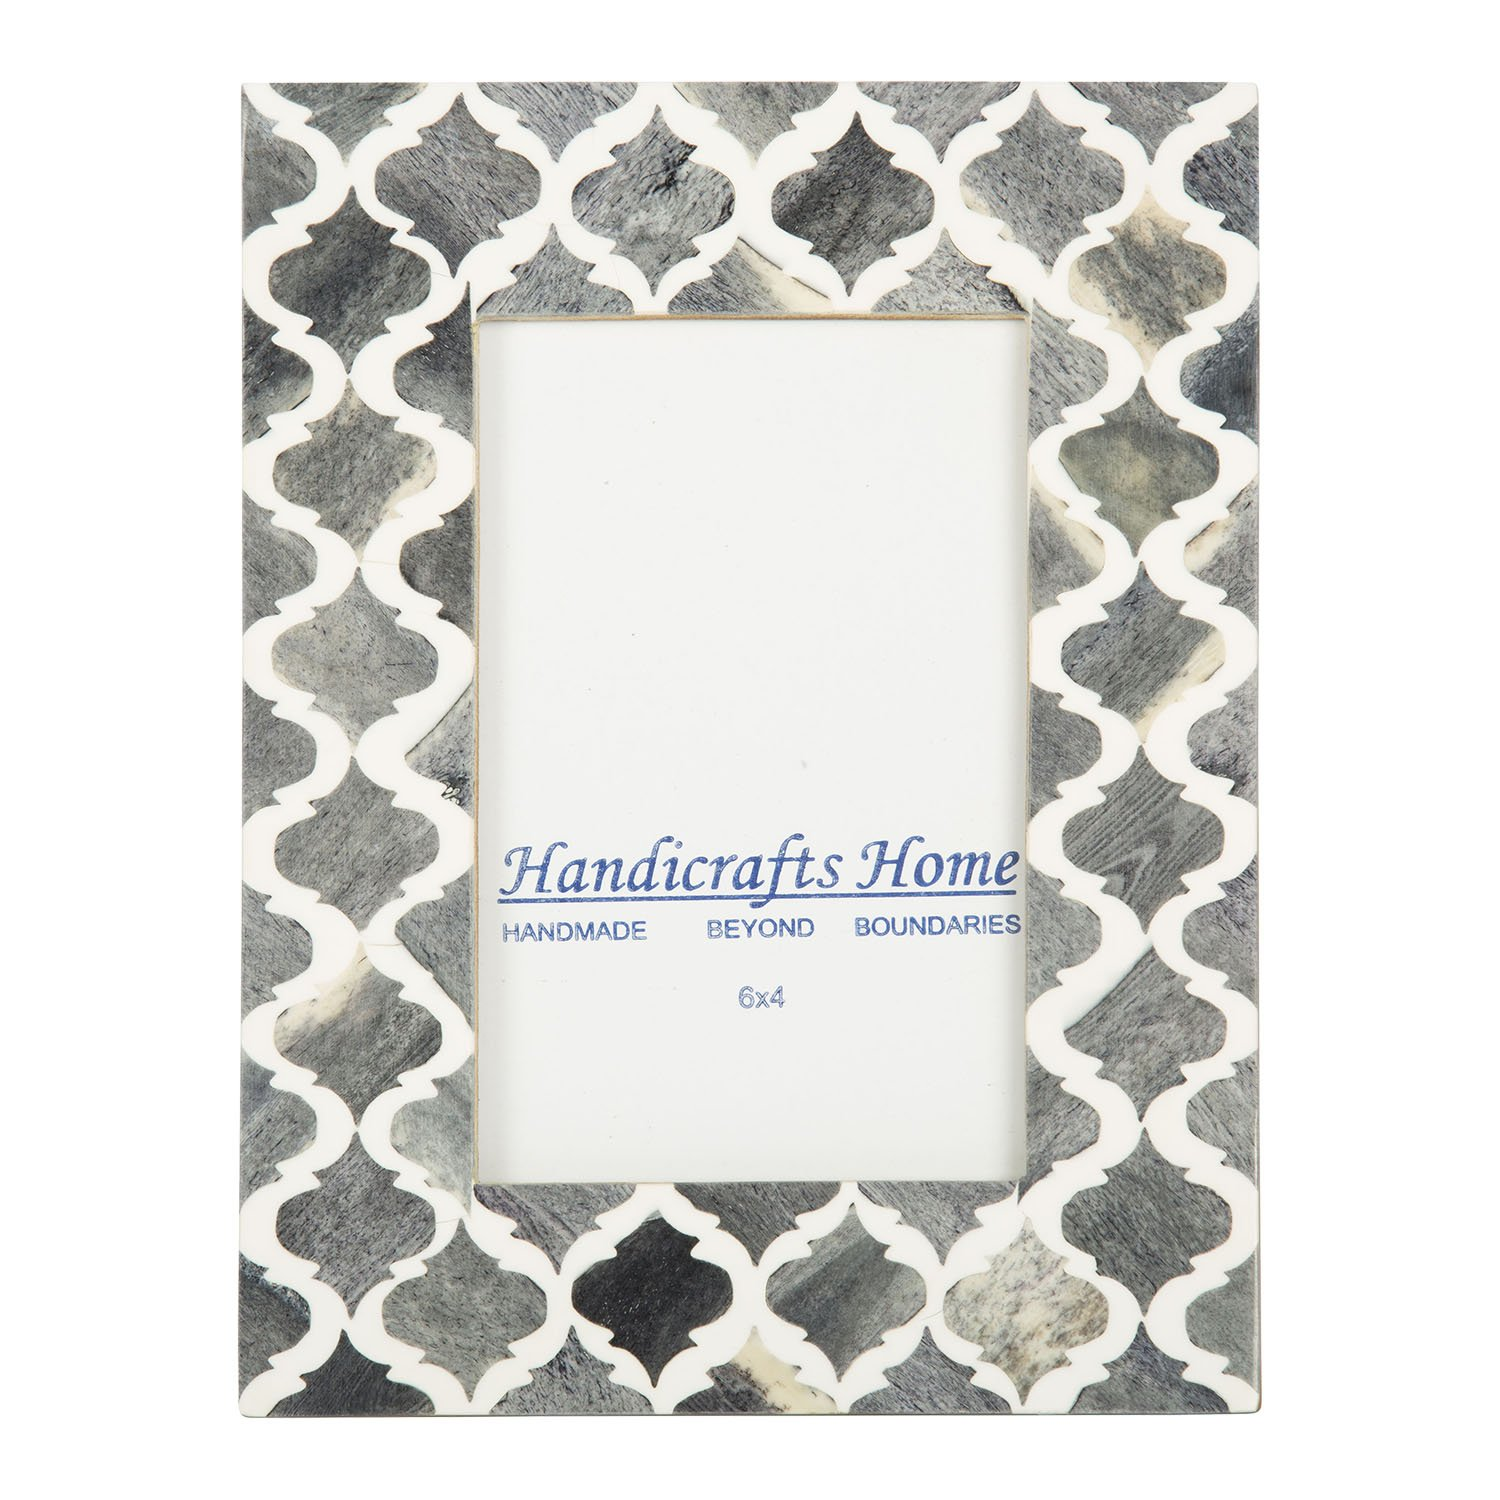 Picture Photo Frame Moorish Damask Moroccan Arts Inspired Handmade Naturals Bone Frames Photo Size 4x6 & 5X7 Inches (4X6, Gray & White) by Handicrafts Home